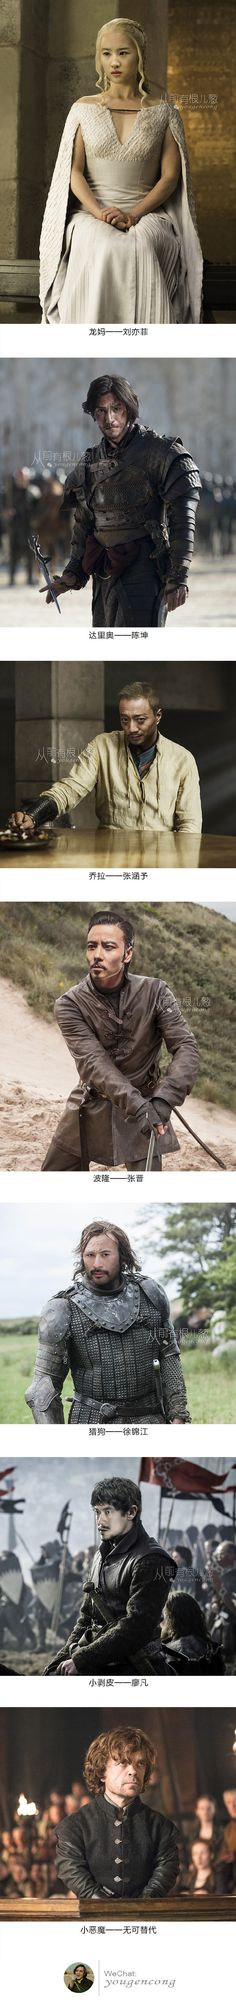 If Game of thrones played by chinese? (3)